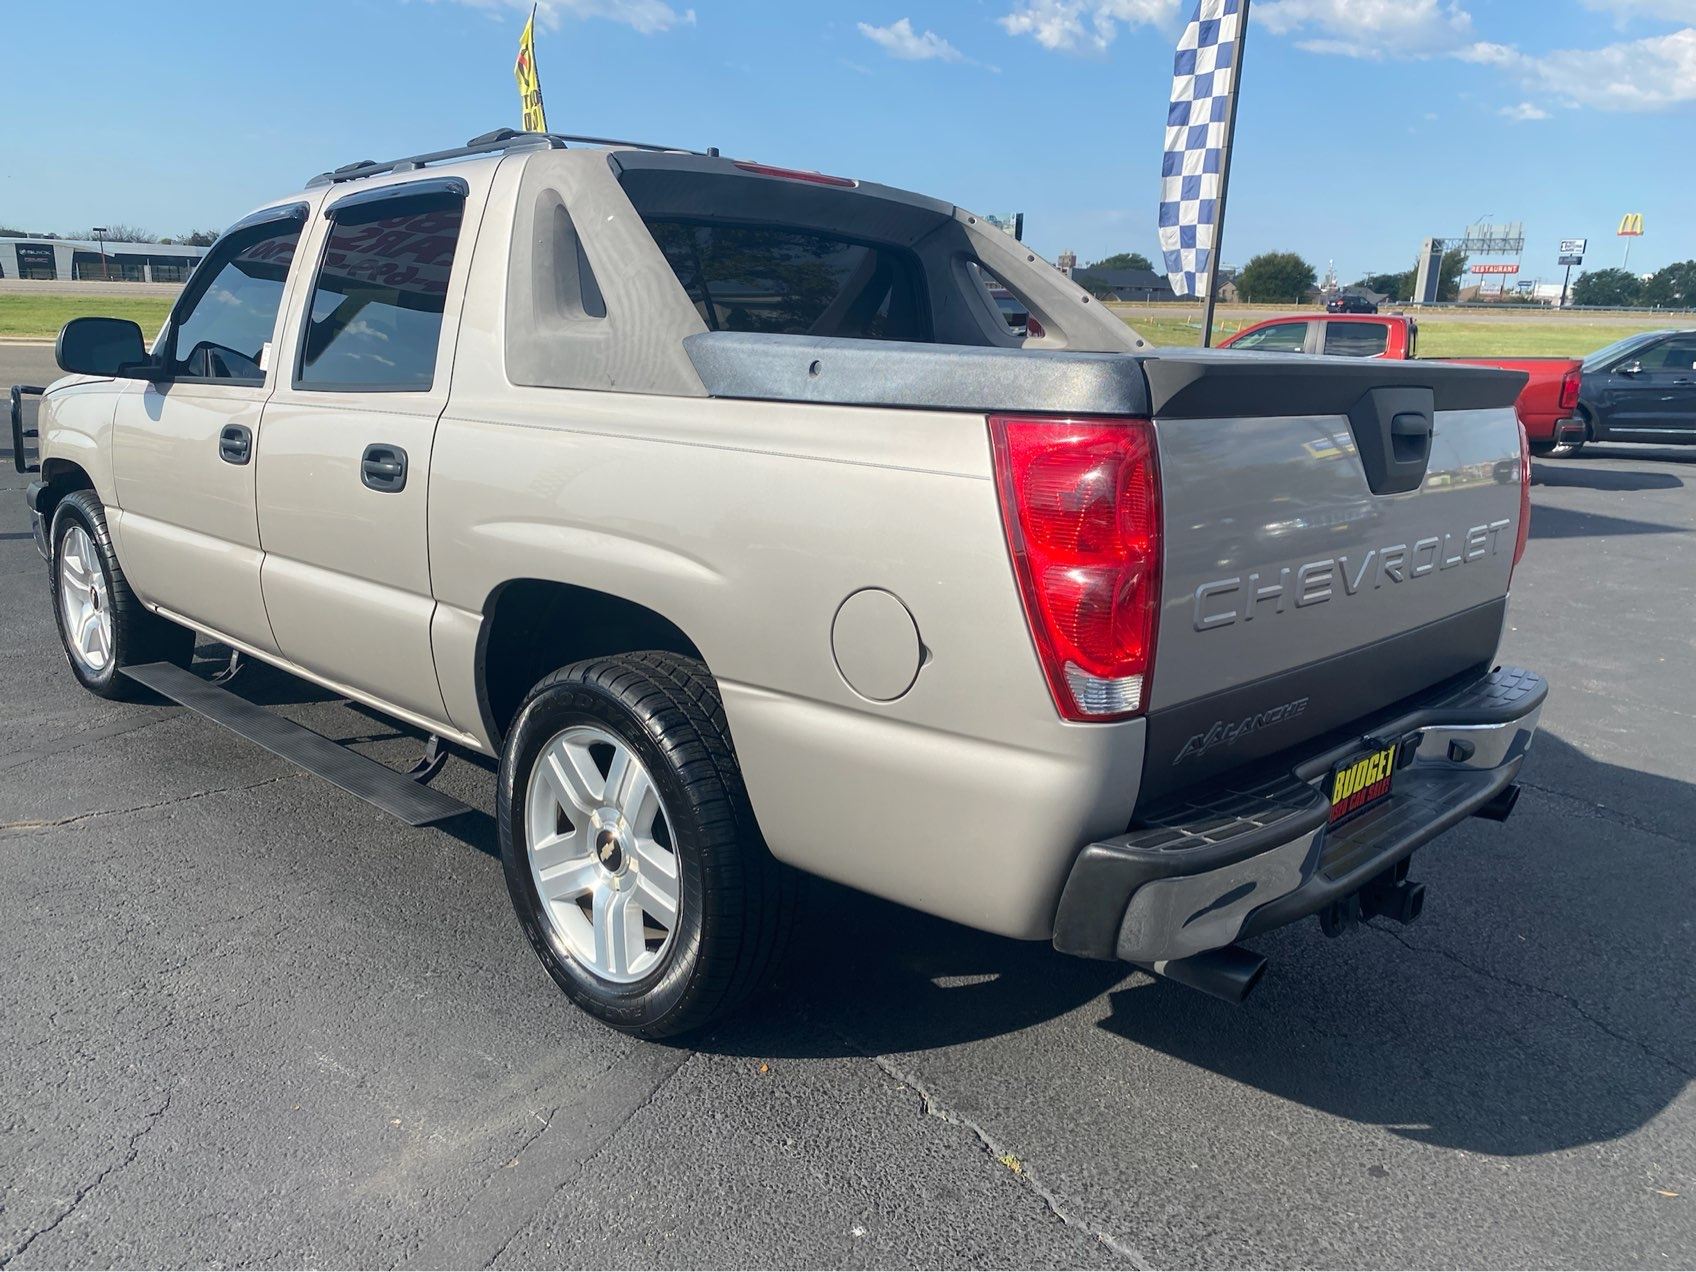 used vehicle - Truck CHEVROLET AVALANCHE 2006